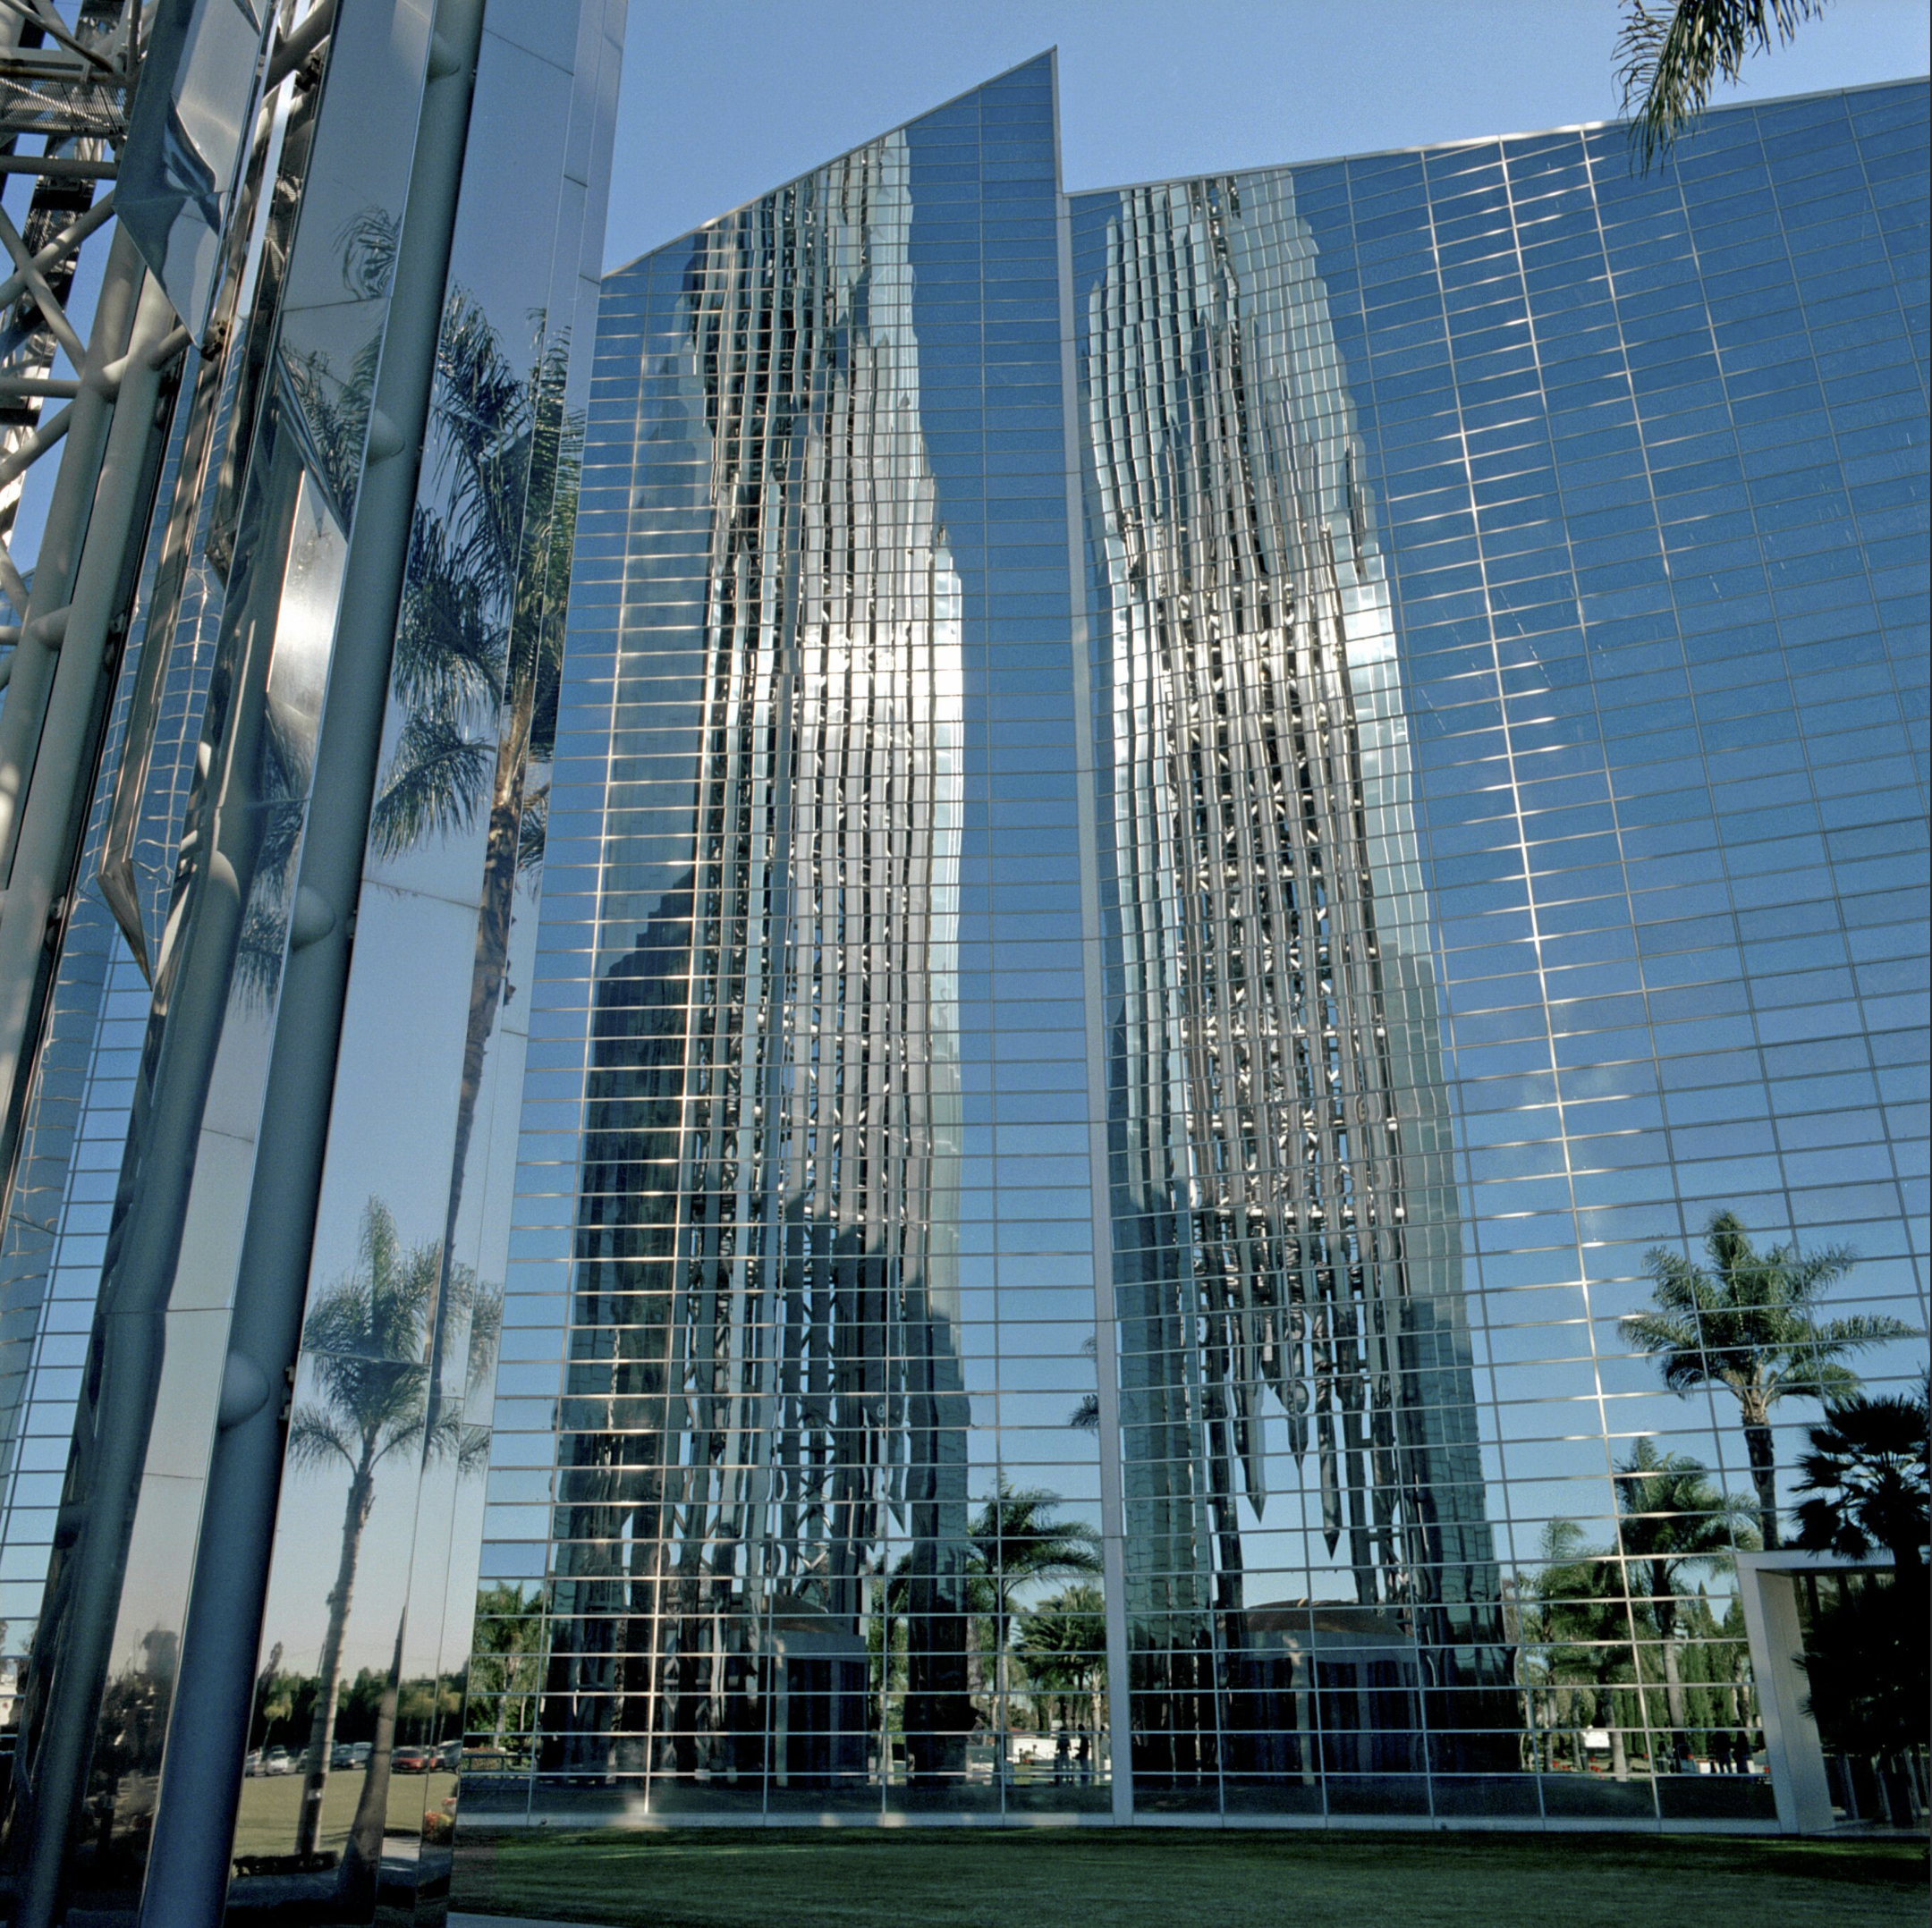 Crystal Cathedral, Los Angeles, California, Philip Johnson architect, 2005